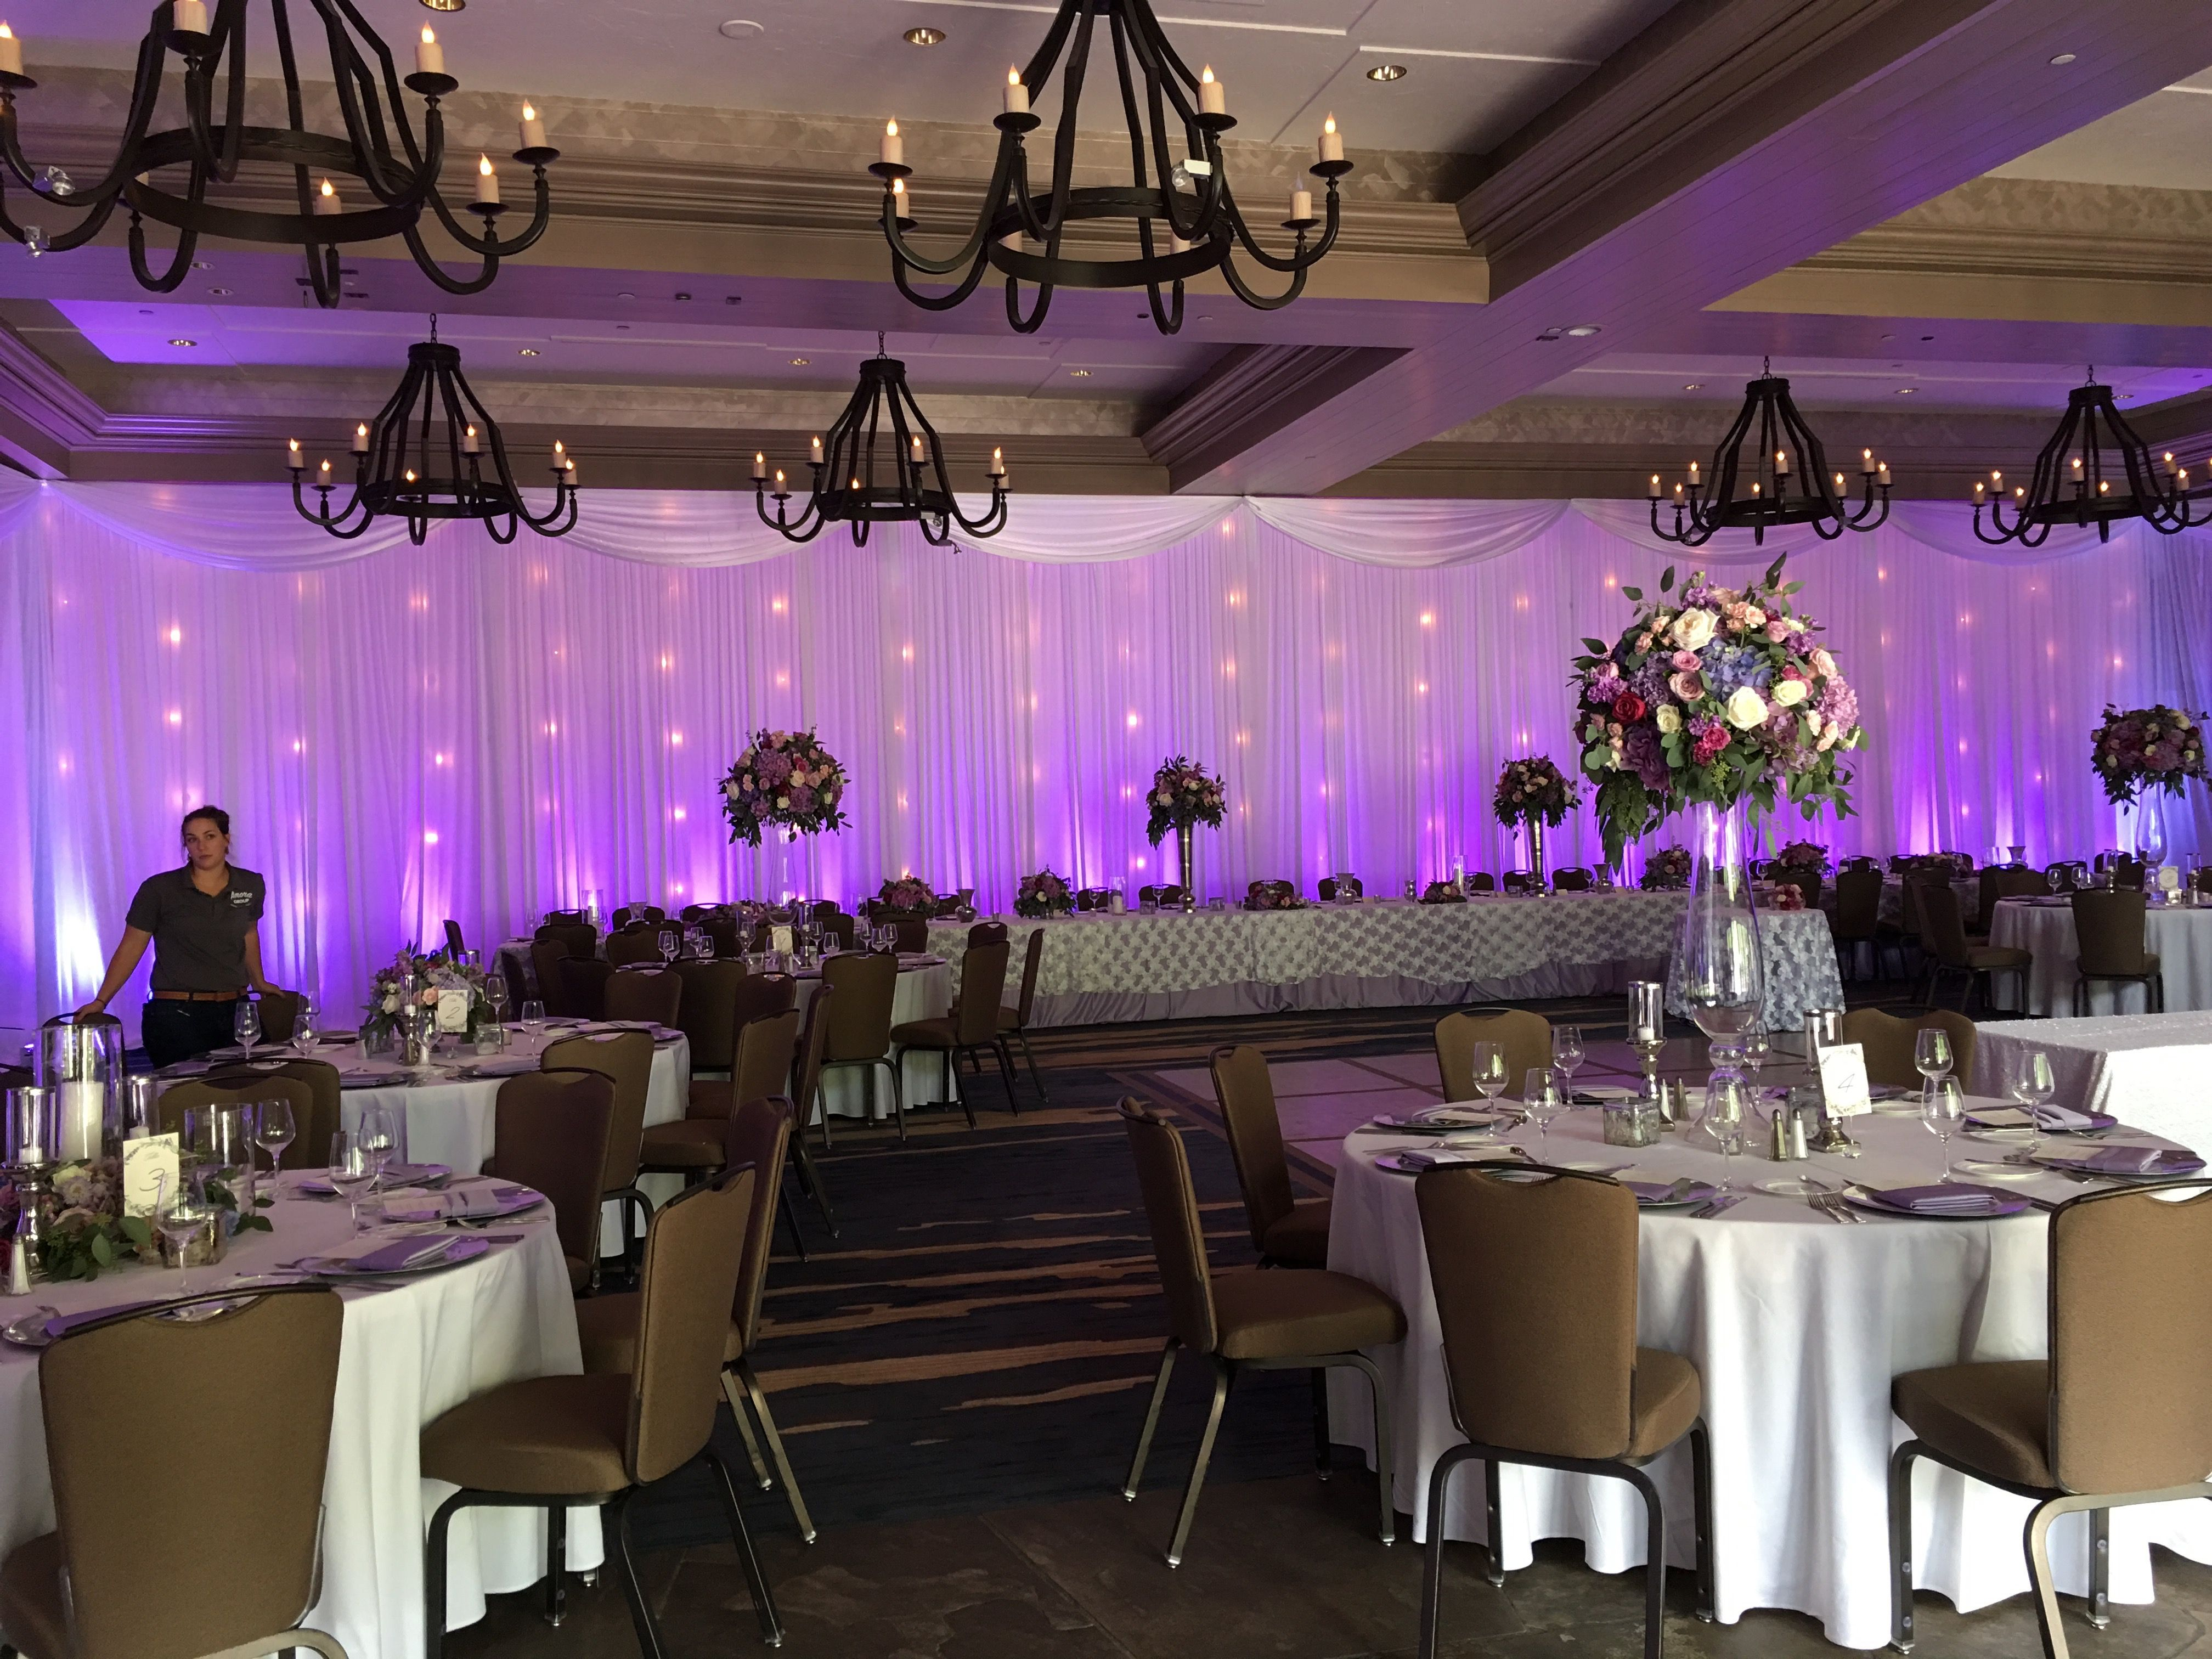 1920's themed wedding decorations november 2018 Wedding draping valance up lights and market lighting From our